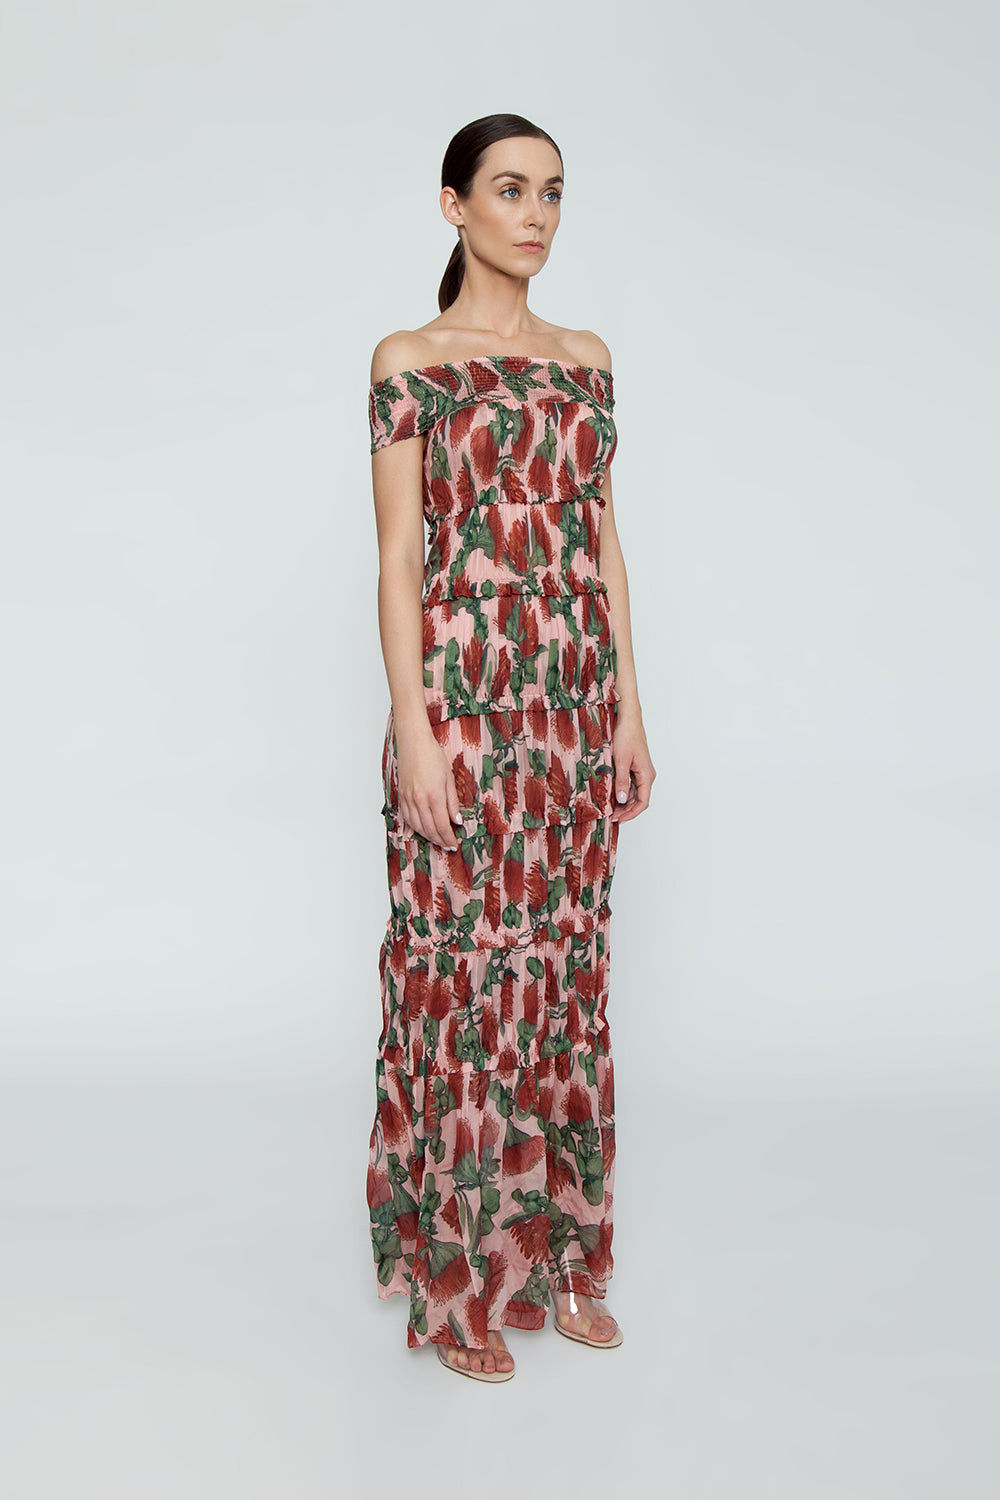 ADRIANA DEGREAS Off The Shoulder Tier Long Dress - Fiore Rose Print Dress | Fiore Rose Print| Adriana Degreas Off The Shoulder Tier Long Dress - Fiore Rose Print Maxi dress Smocked off shoulder  Ruffle tier detail  Side View